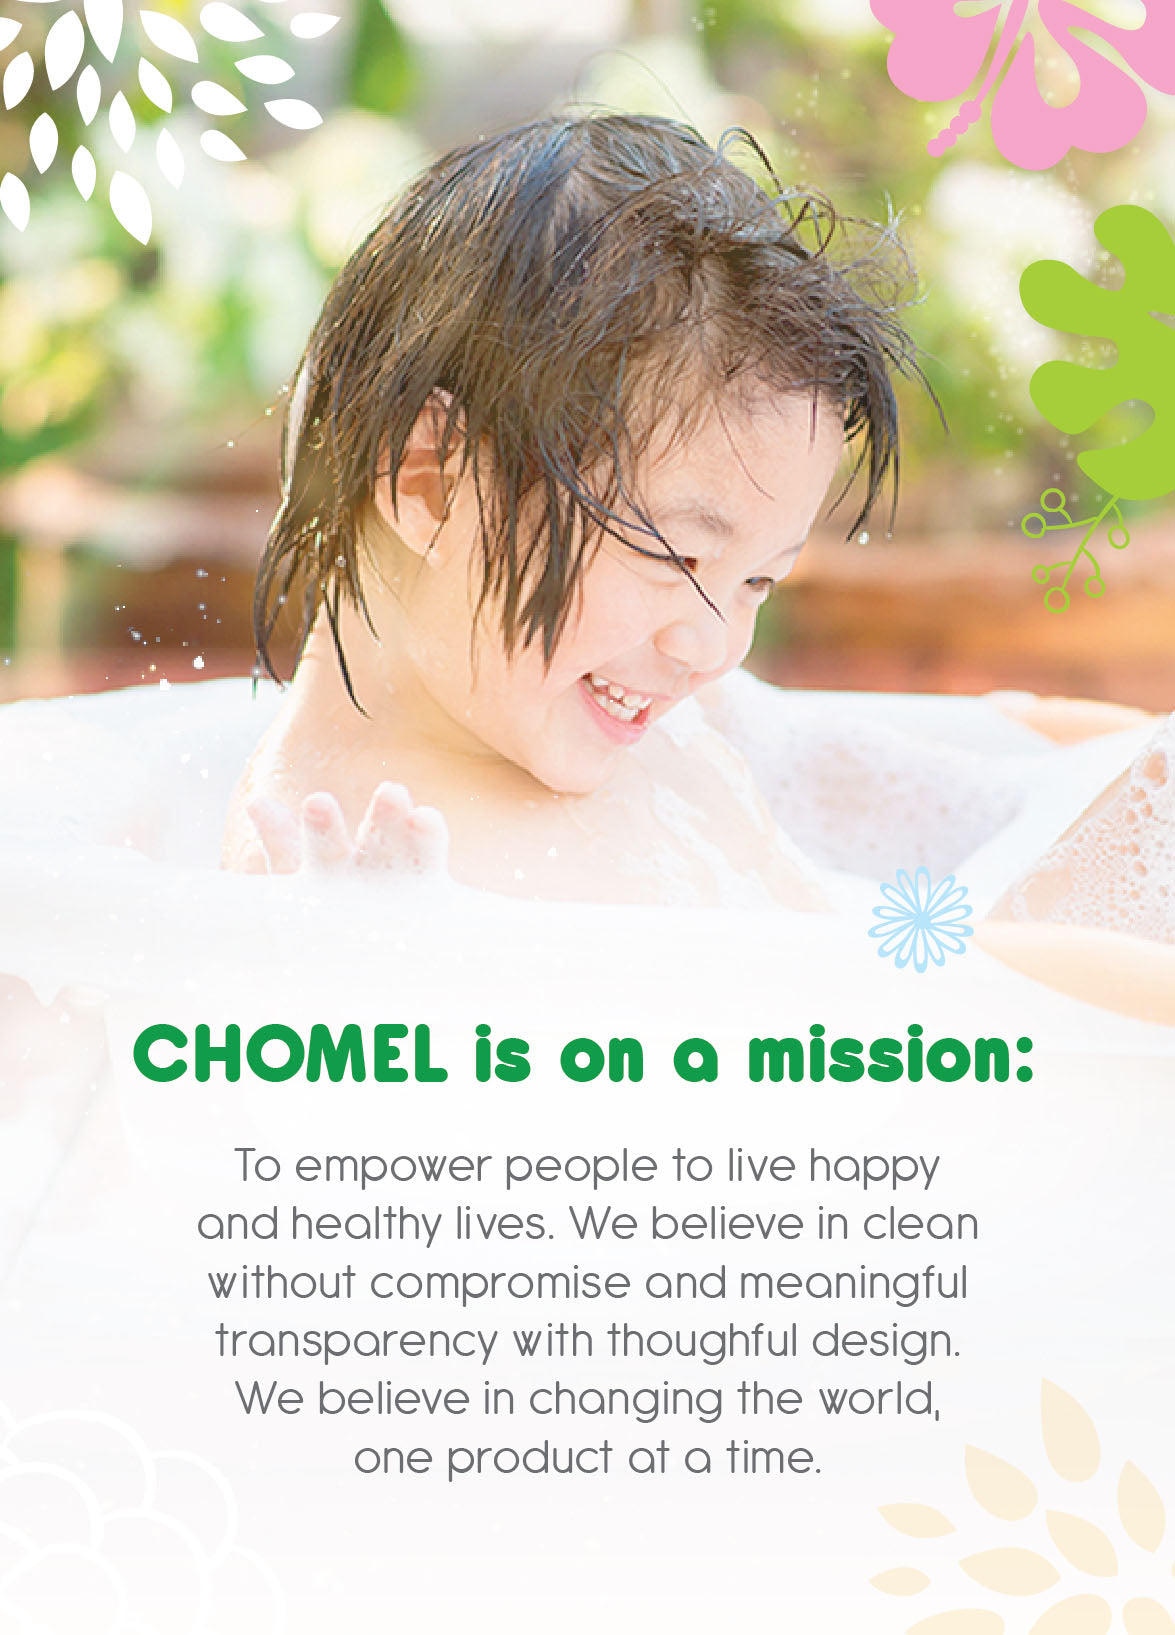 Chomel is on mission